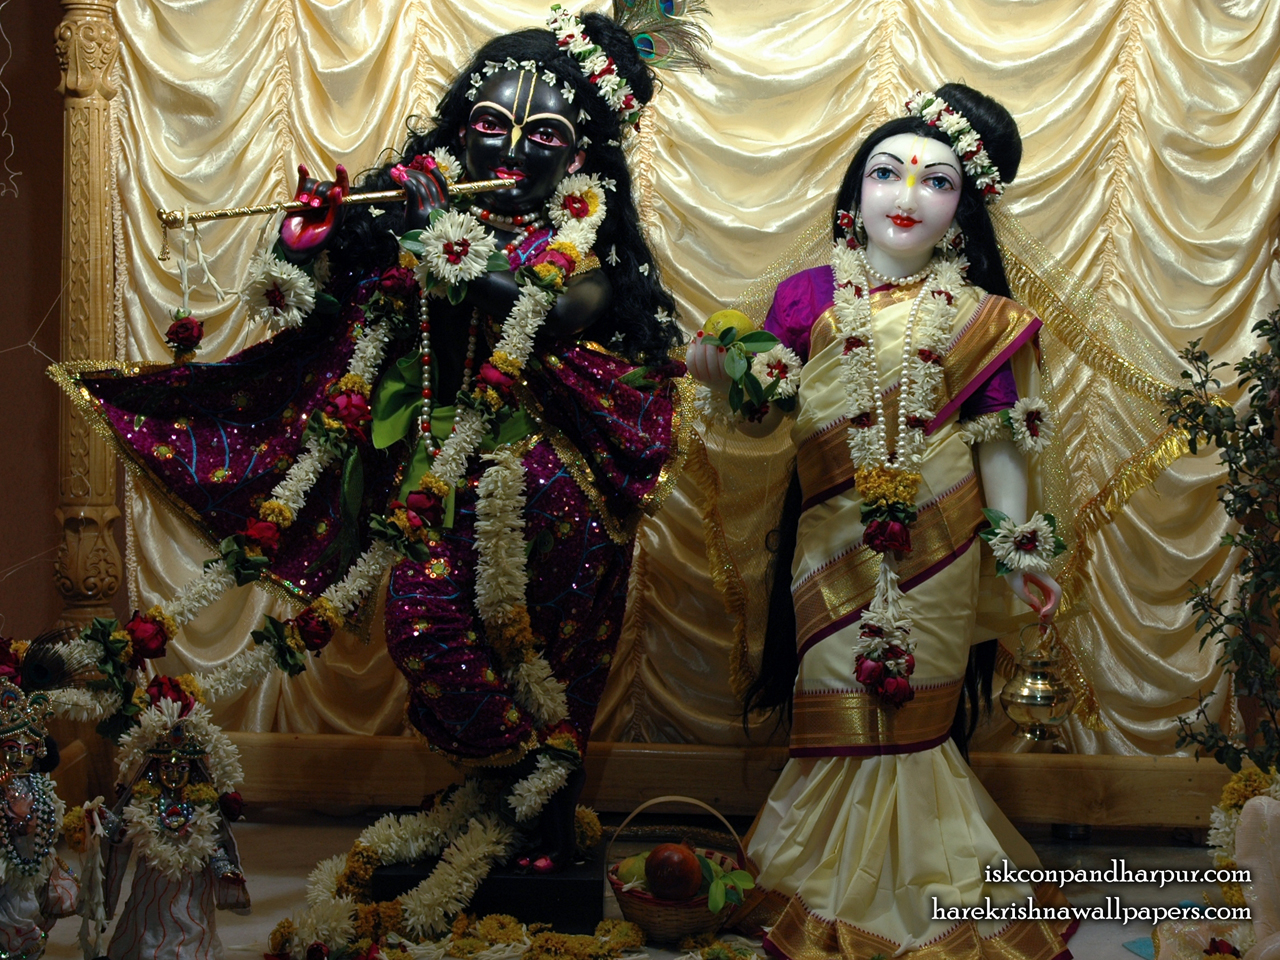 Sri Sri Radha Pandharinath Wallpaper (001) Size 1280x960 Download